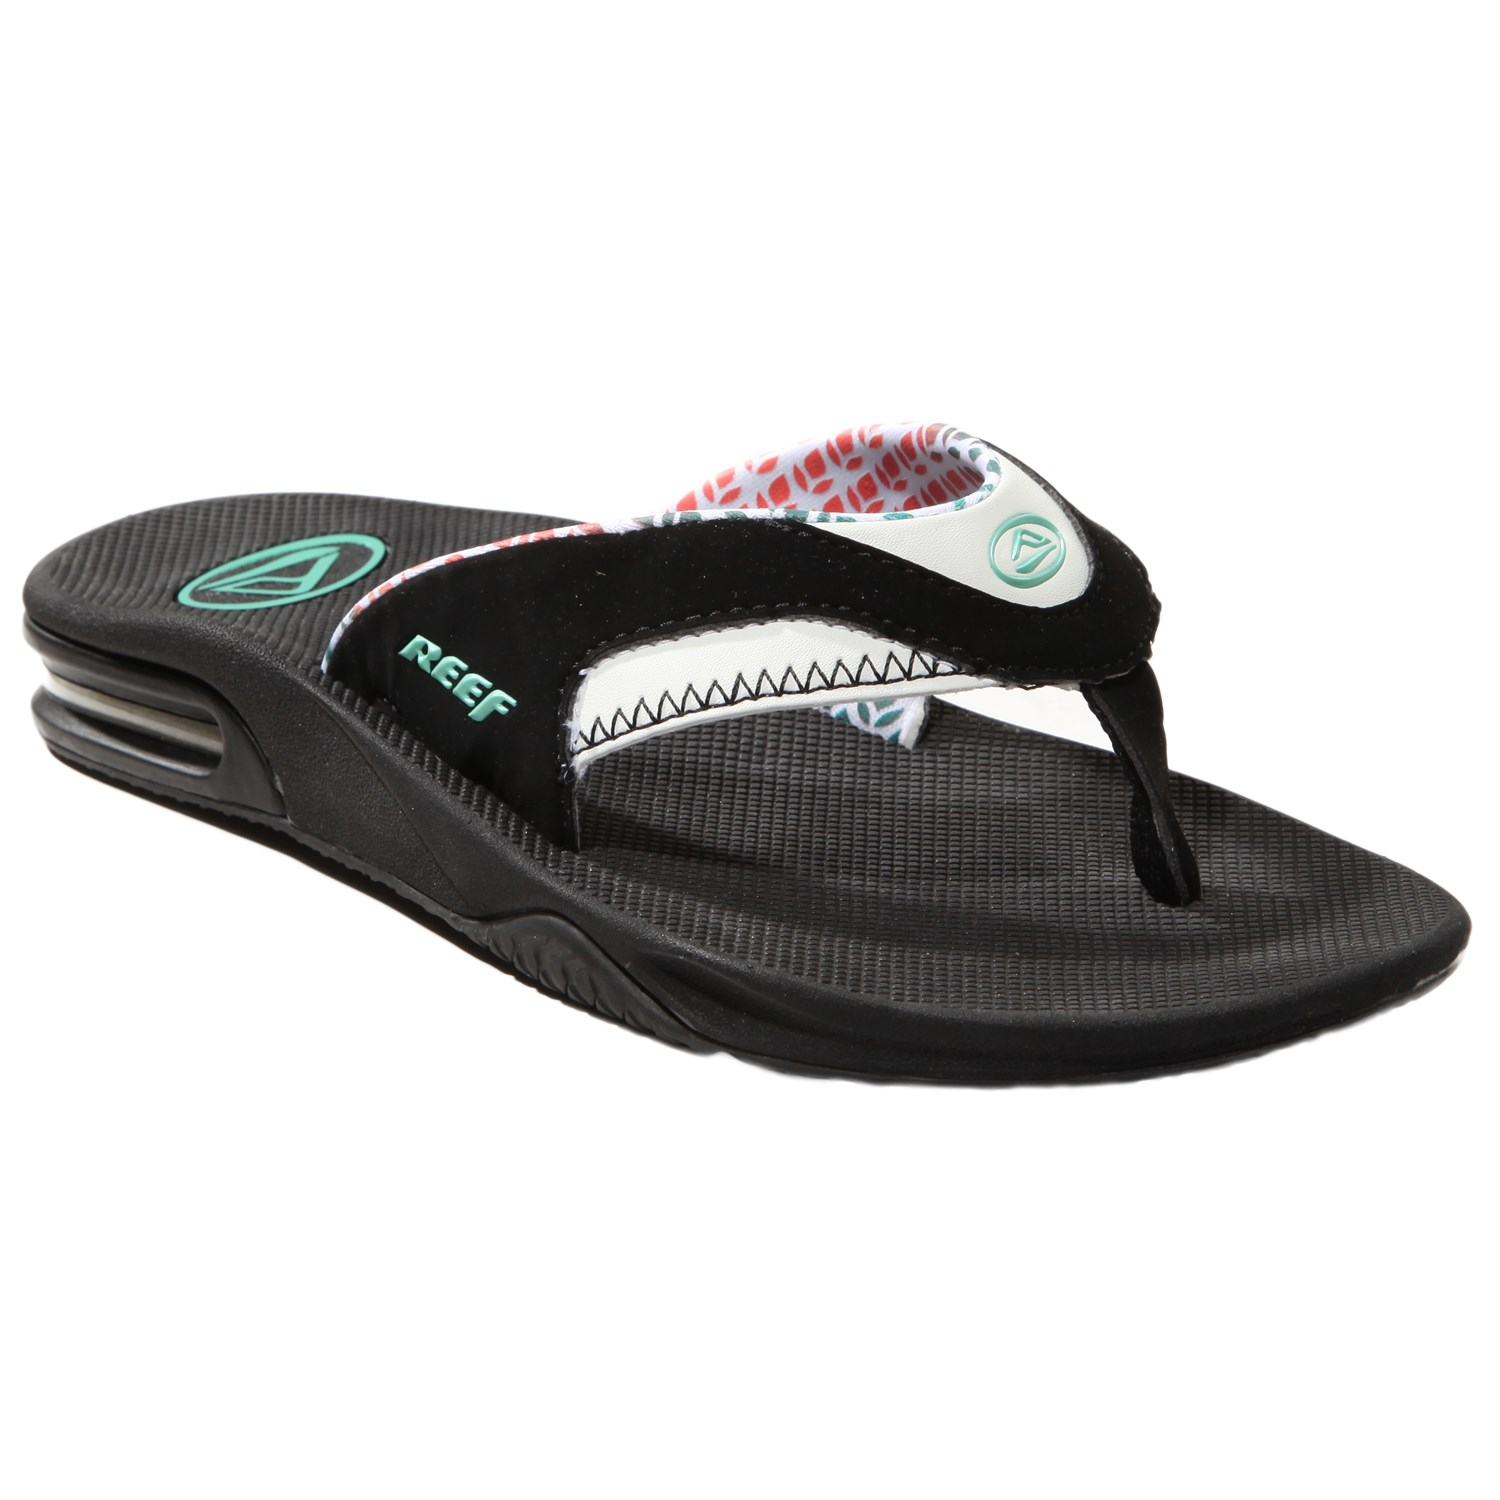 New If Youll Need The Best Order Products Reef Womens Rexa Sandal, Find Inside Our Store And Review More Promotions For Other Products If You Want To Determine The Actual Prices, Please Click Check Prices Button To See The Real Prices Reef